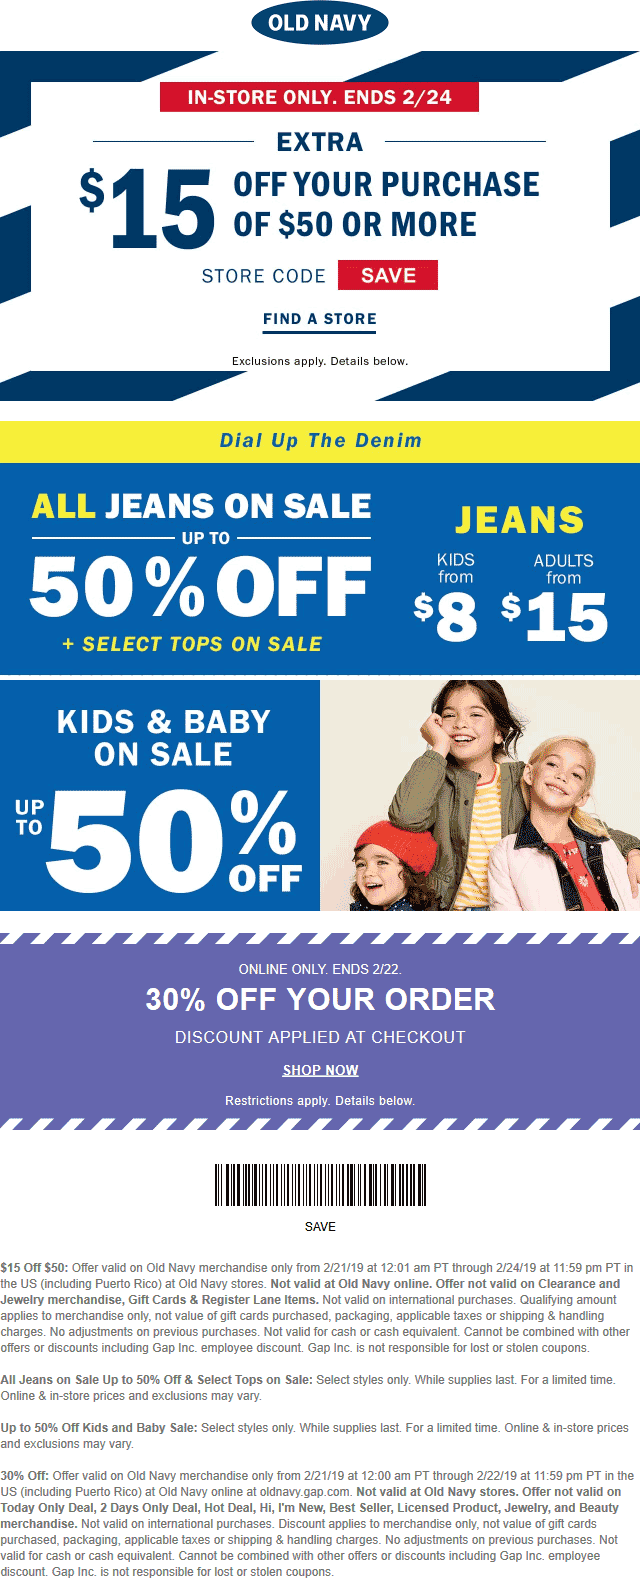 Old Navy Coupon October 2019 $15 off $50 at Old Navy, or 30% online